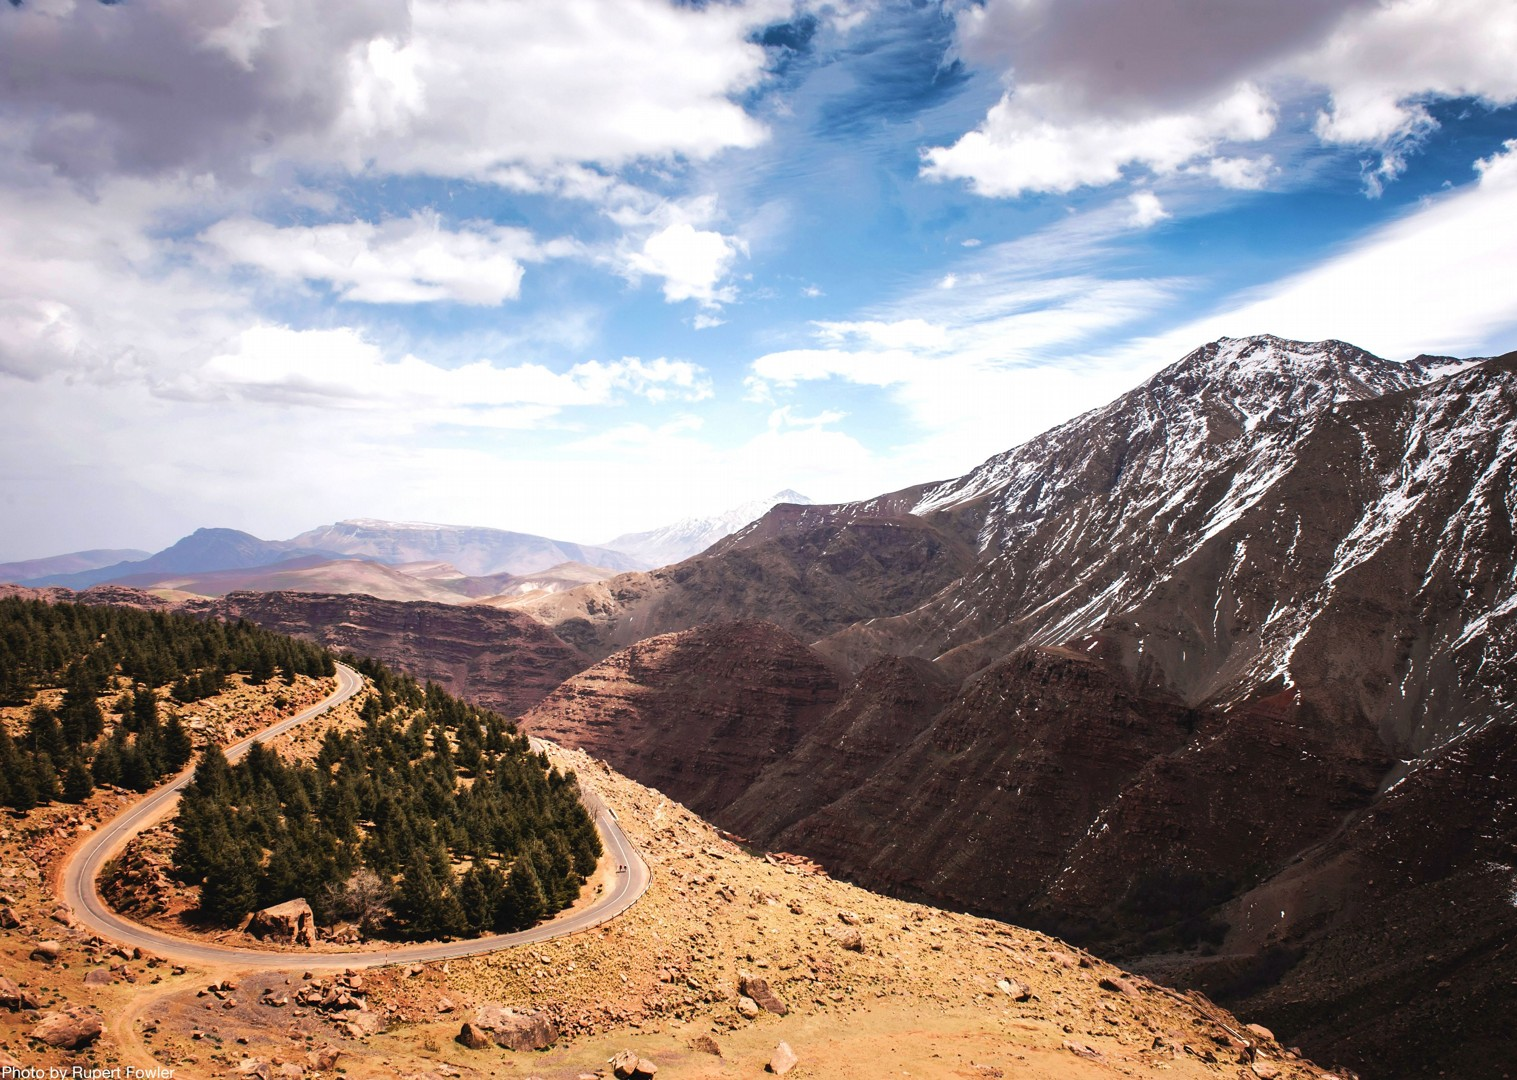 towering-test-pass-morocco-holiday-cycling-road.jpg - Morocco - Road Atlas - Road Cycling